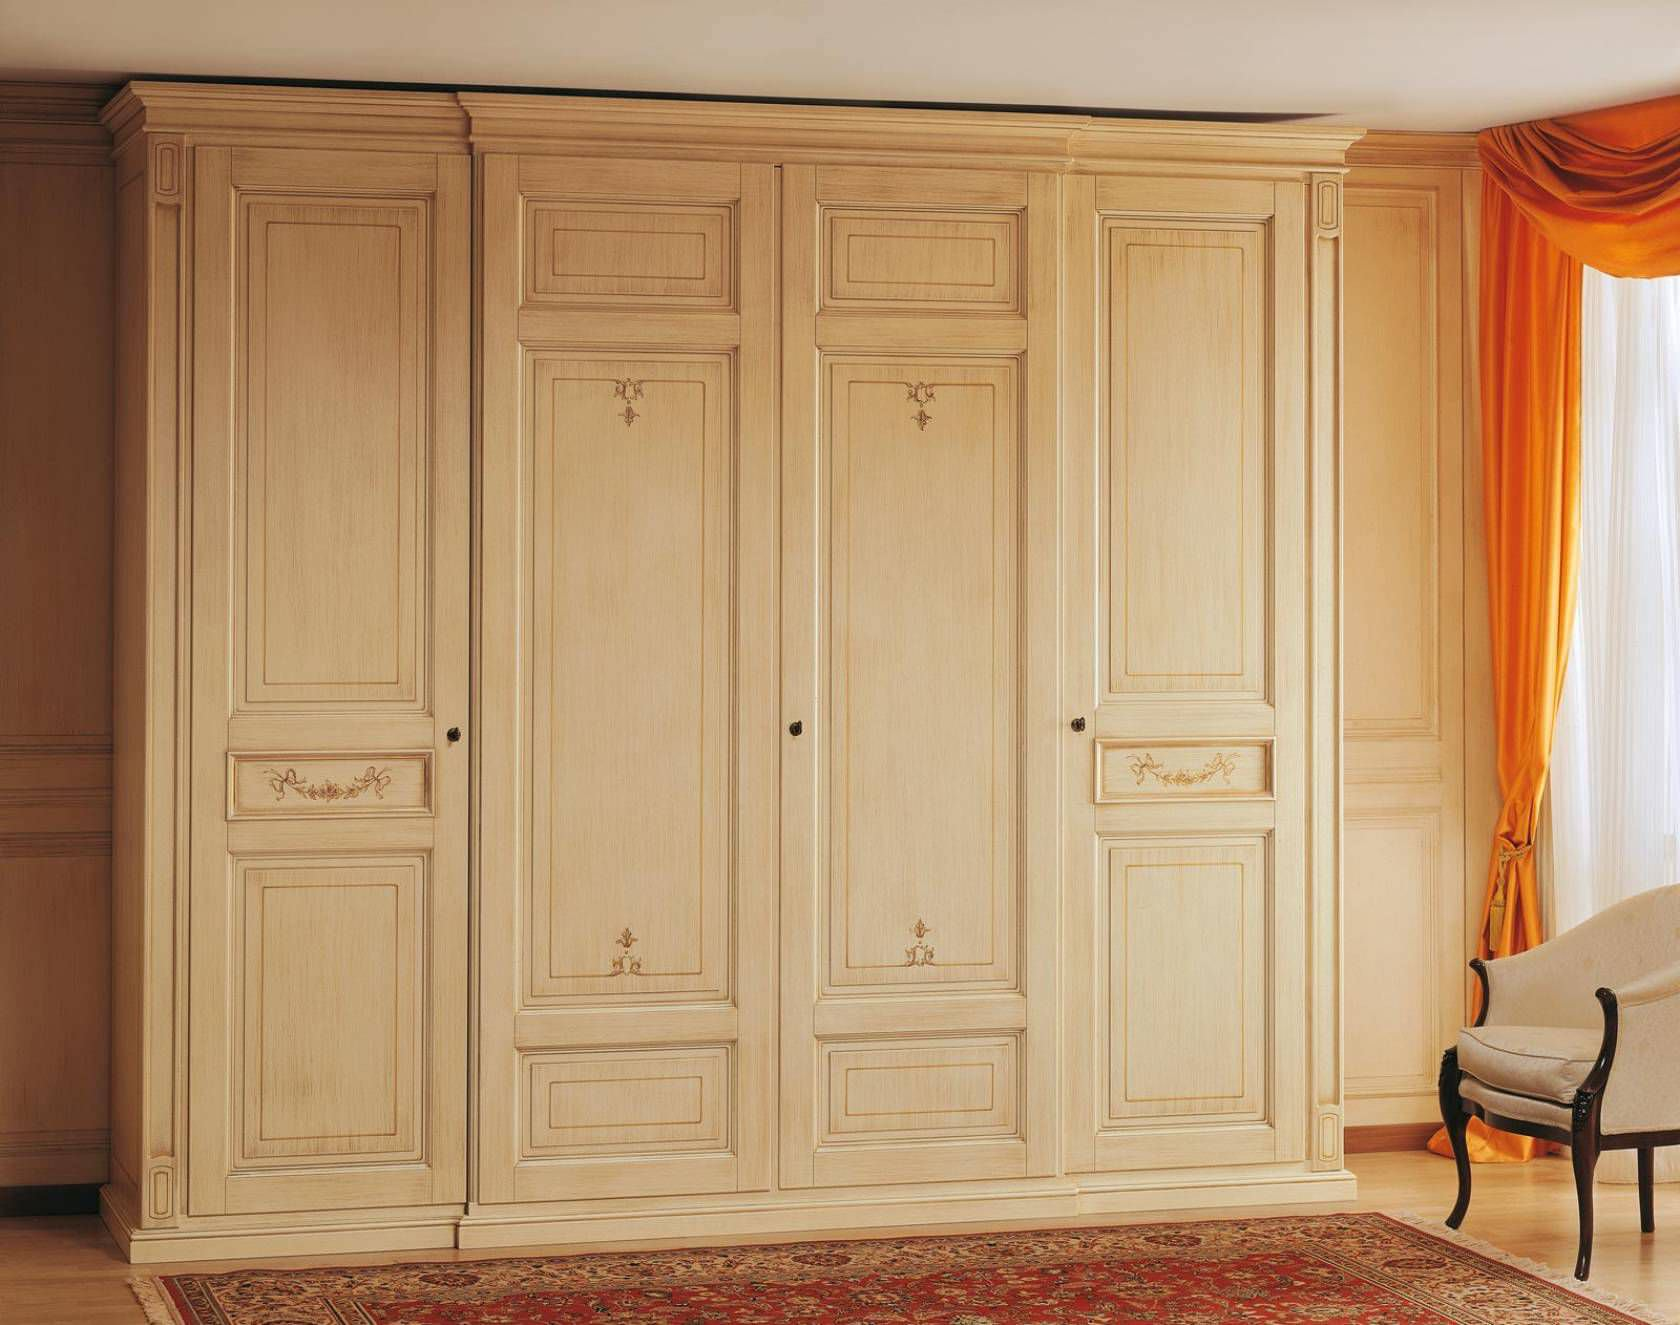 Traditional Wardrobe / Wooden / Lacquered Wood / With Swing Doors CANOVA  VIMERCATI MEDA LUXURY CLASSIC ...